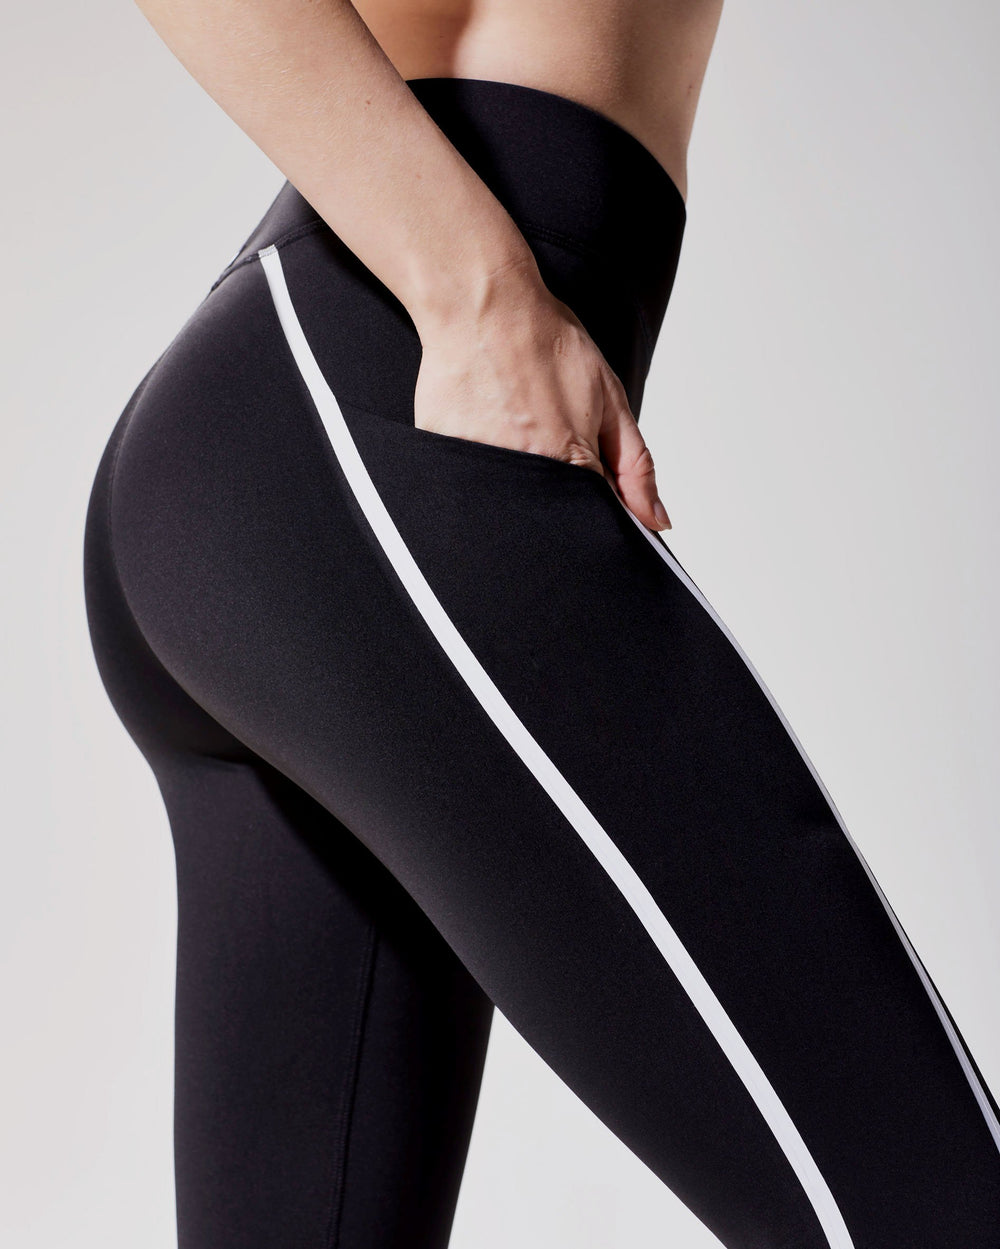 Linear Legging - Black/White